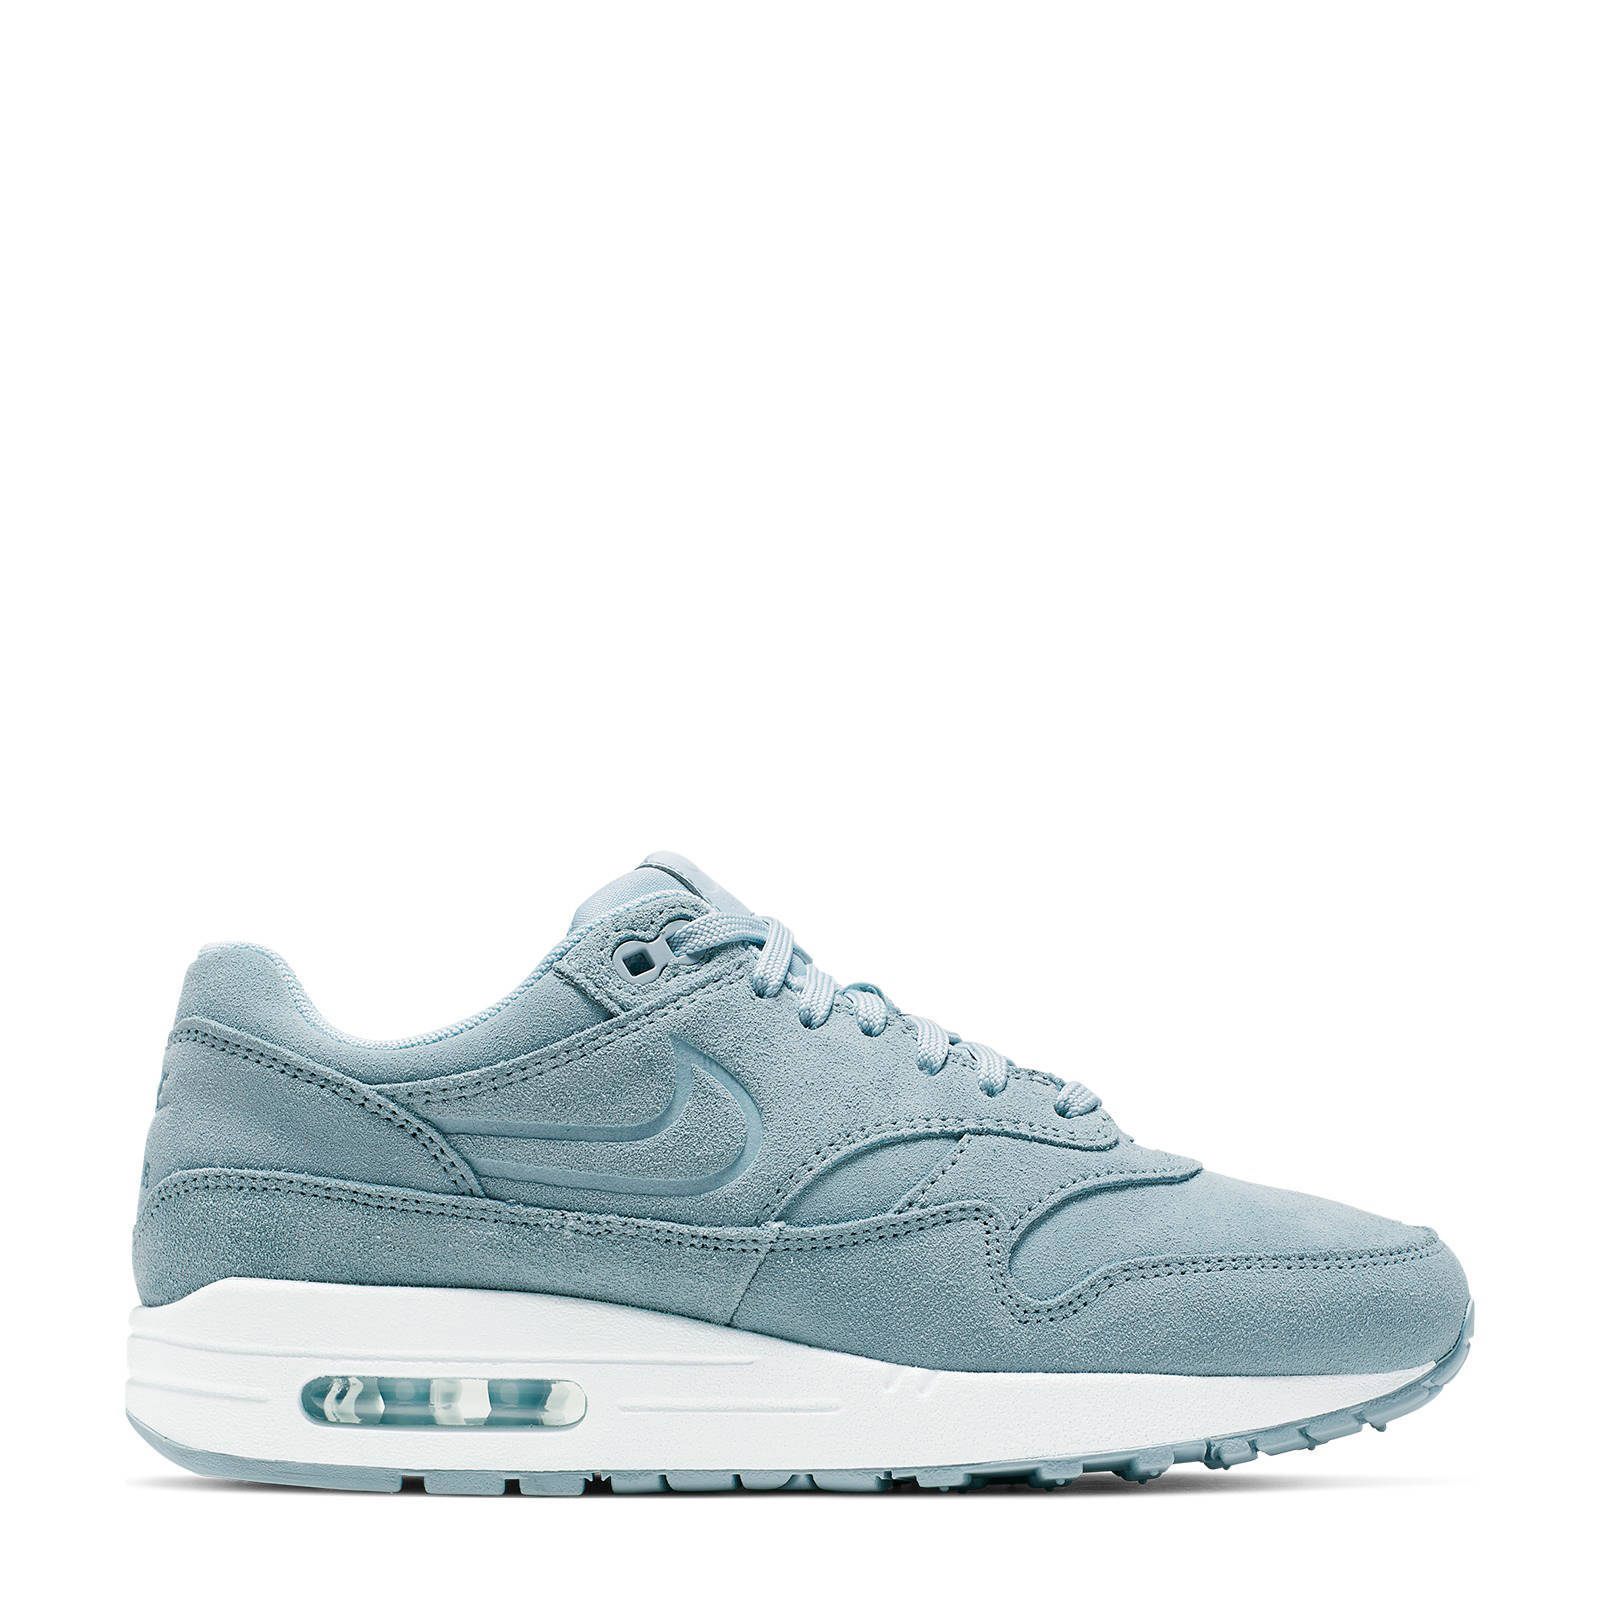 Air Max 1 Prm suède sneakers